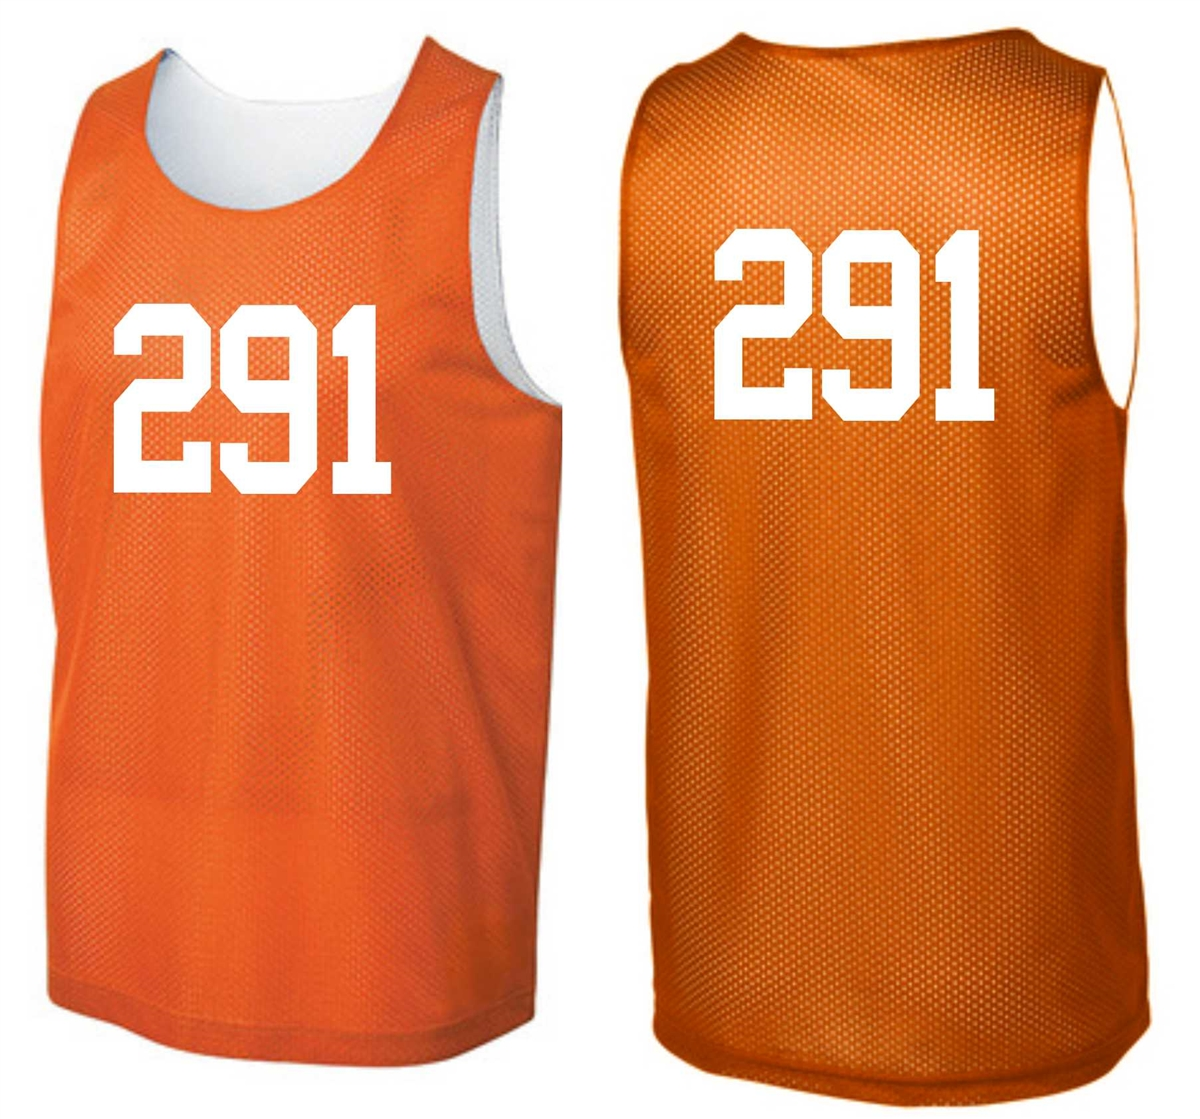 59859e8583e Reversible Scrimmage Vests